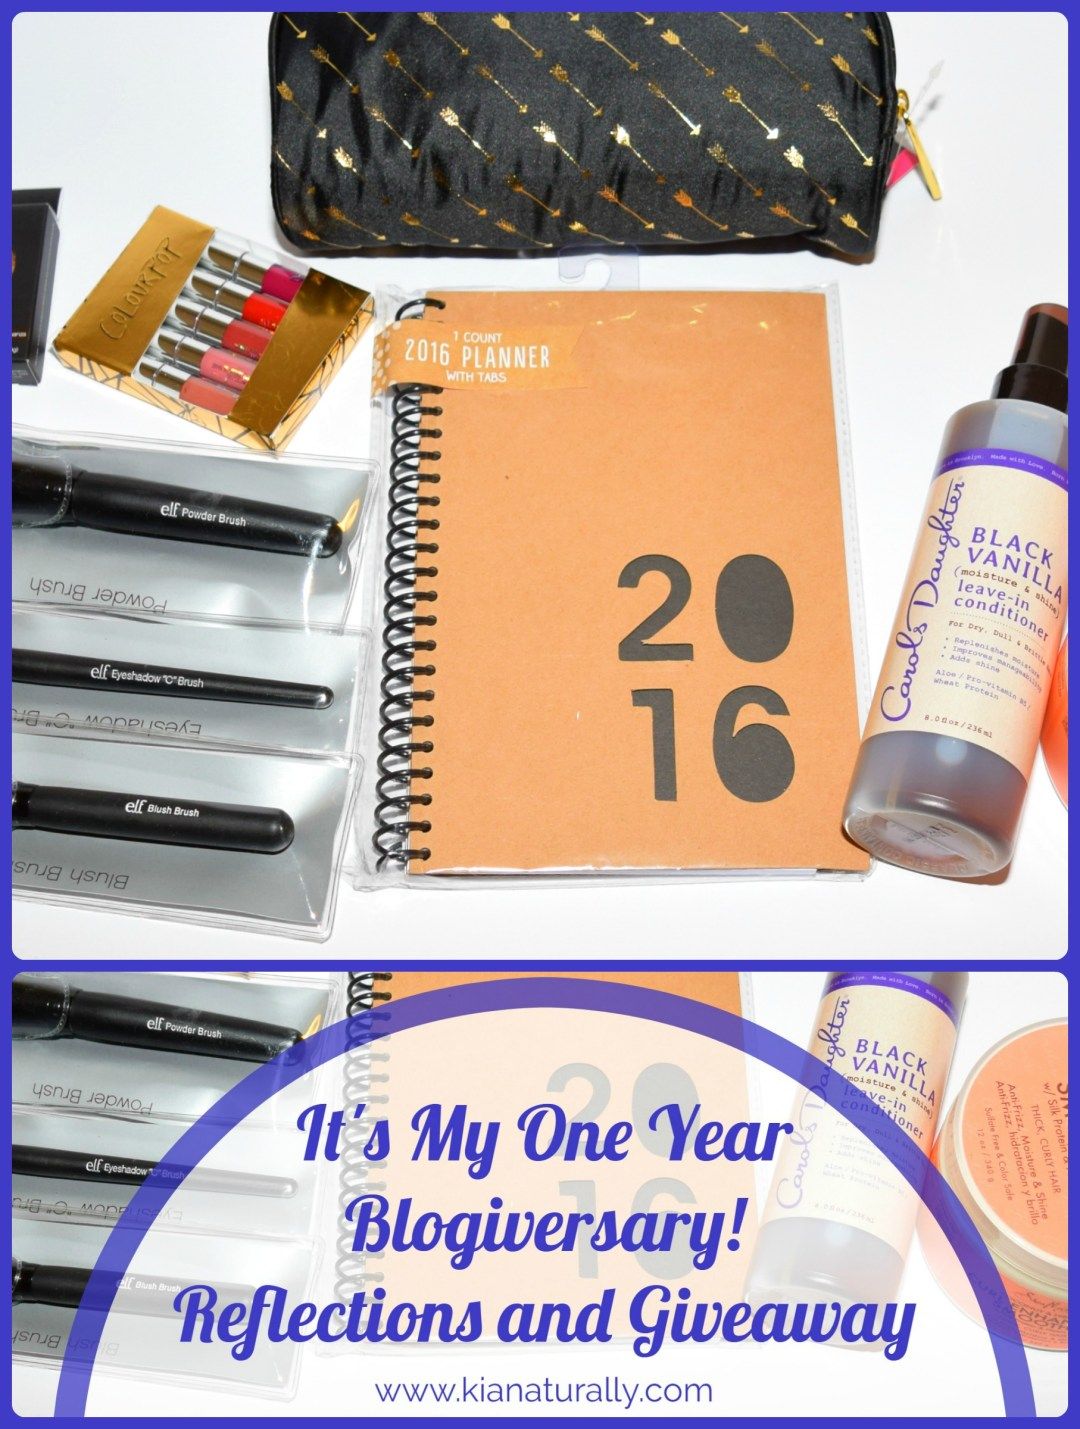 It's My One Year Blogiversary! Reflections and Giveaway (ends 1/26) - www.kianaturally.com